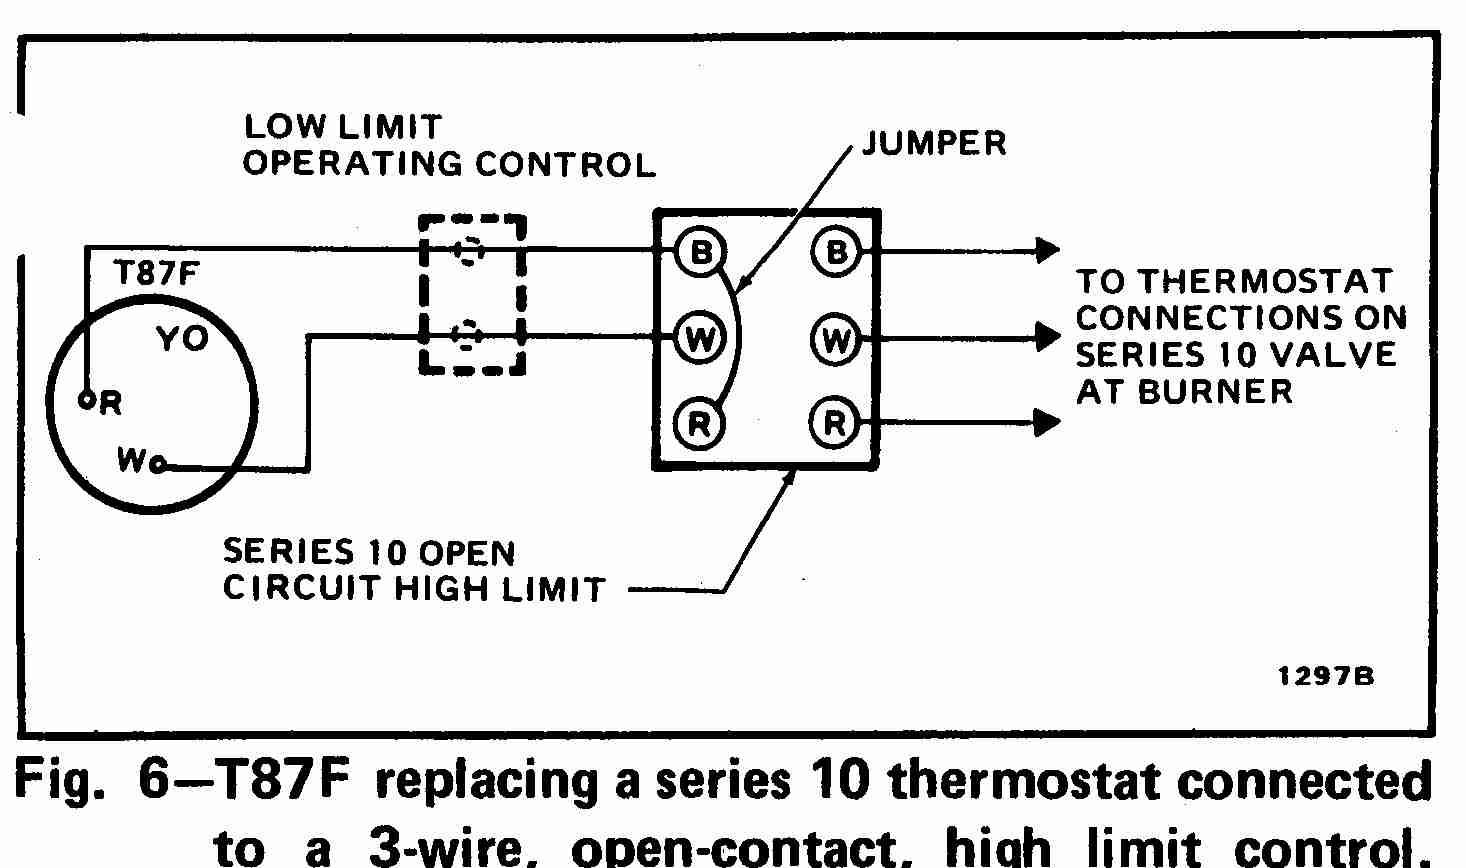 TT_T87F_0002_3WHL_DJF room thermostat wiring diagrams for hvac systems honeywell thermostat wiring diagram 4 wire at bayanpartner.co